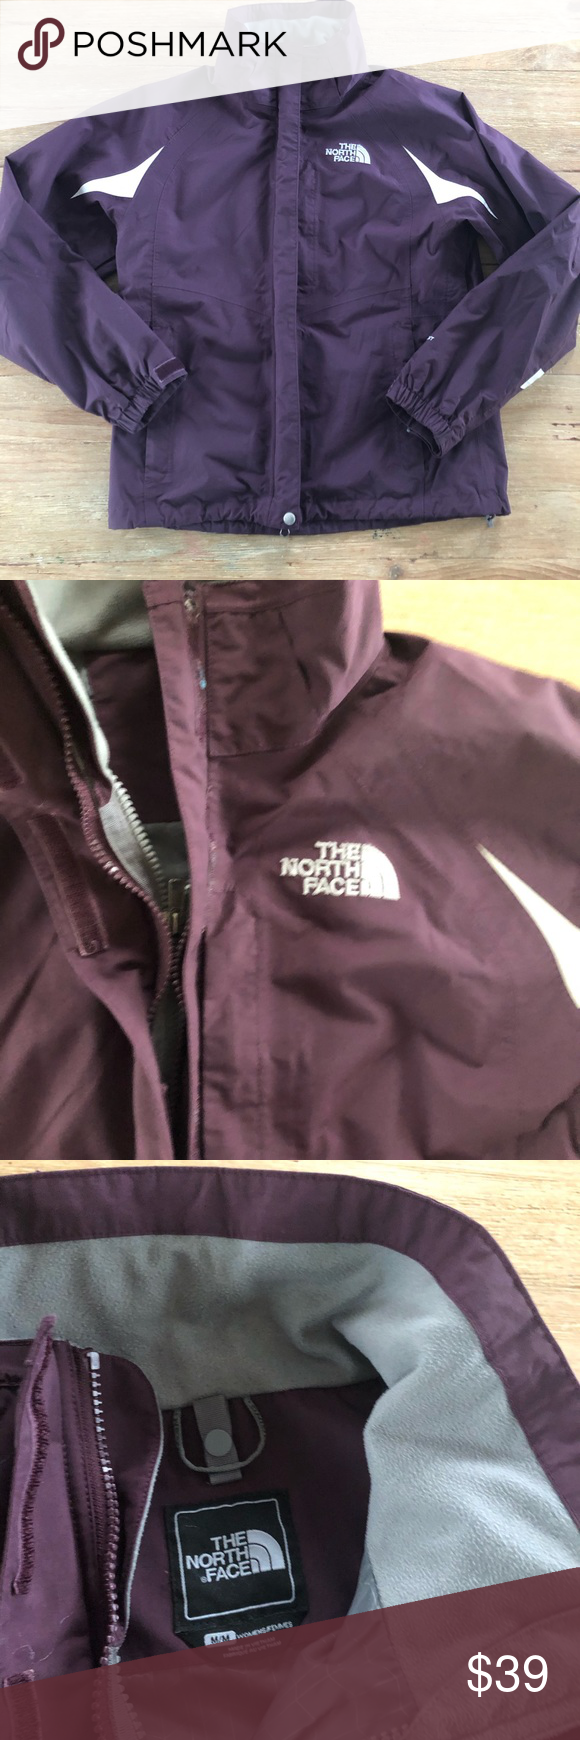 The North Face Hyvent Waterproof Jacket M The North Face Double Zip Waterproof Jacket Womens M Burgundy Maroon Waterproof Jacket North Face Hyvent Jackets [ 1740 x 580 Pixel ]